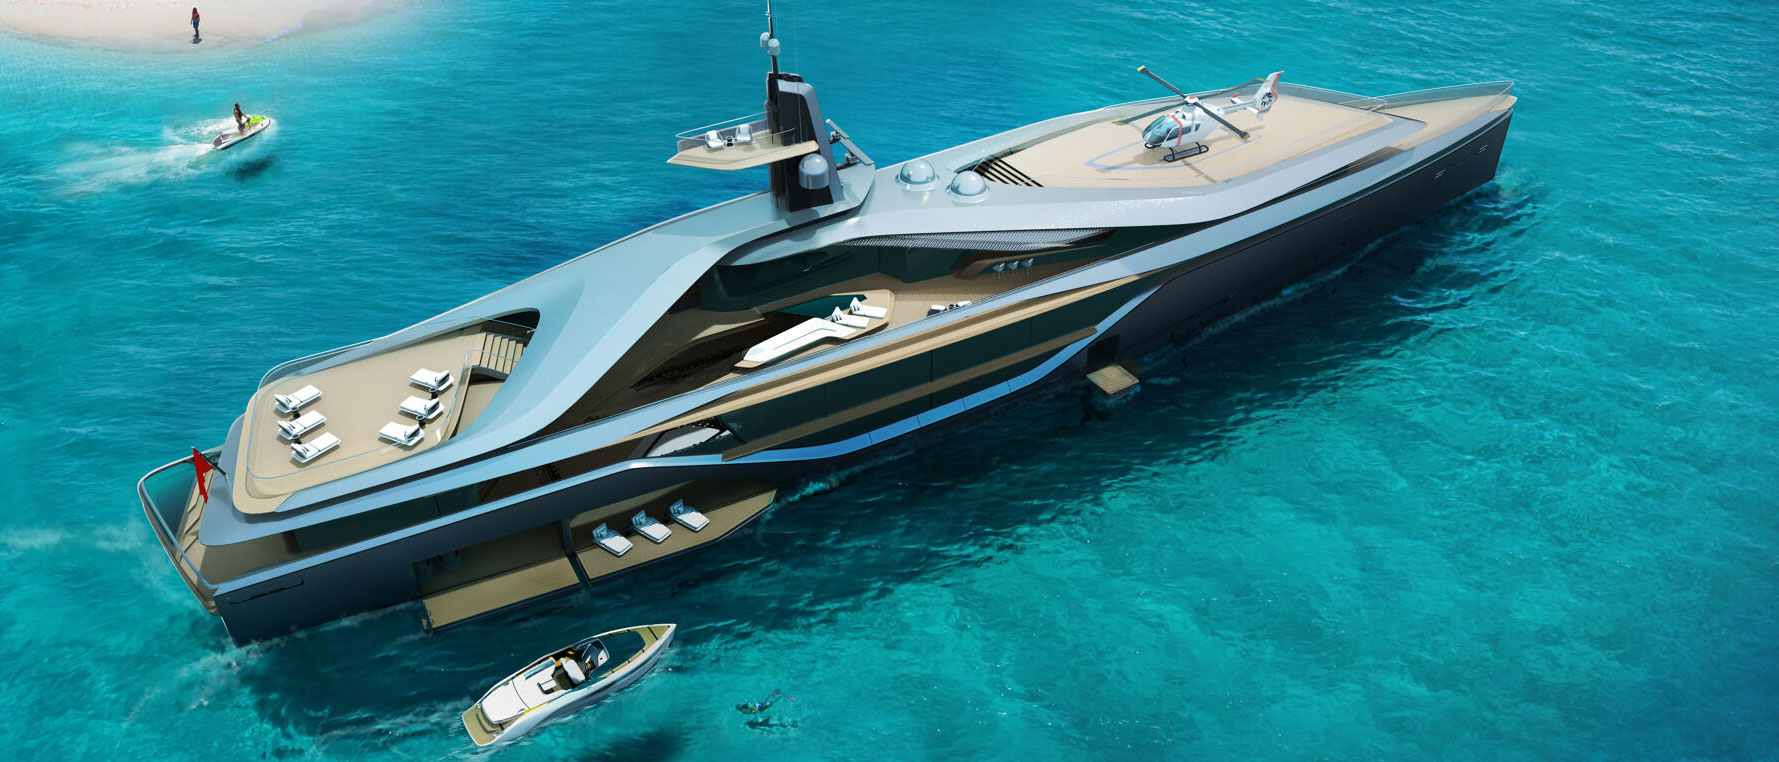 Kairos by Oceanco and Pininfarina – stunning and timeless superyachting